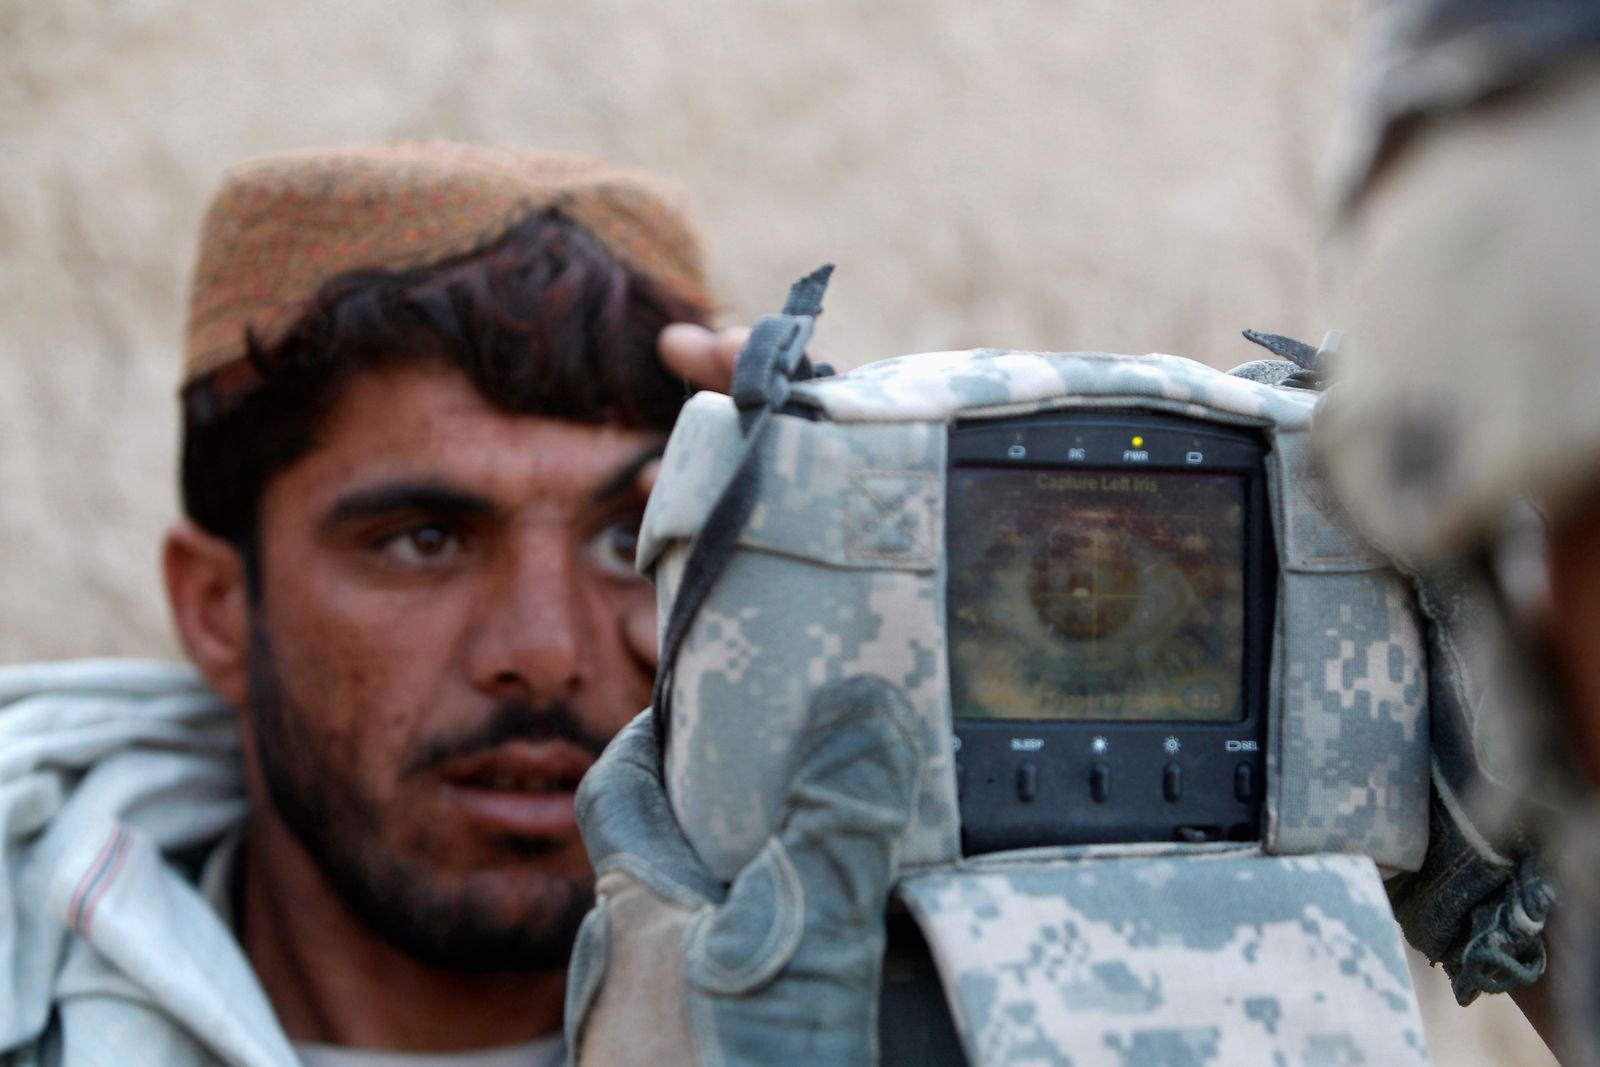 A U.S. Army soldier from 4-73 Cavalry Regiment, 82nd Airborne Division carries out an identification check on an Afghan man with a biometric device during a mission in Zhary district of Kandahar province